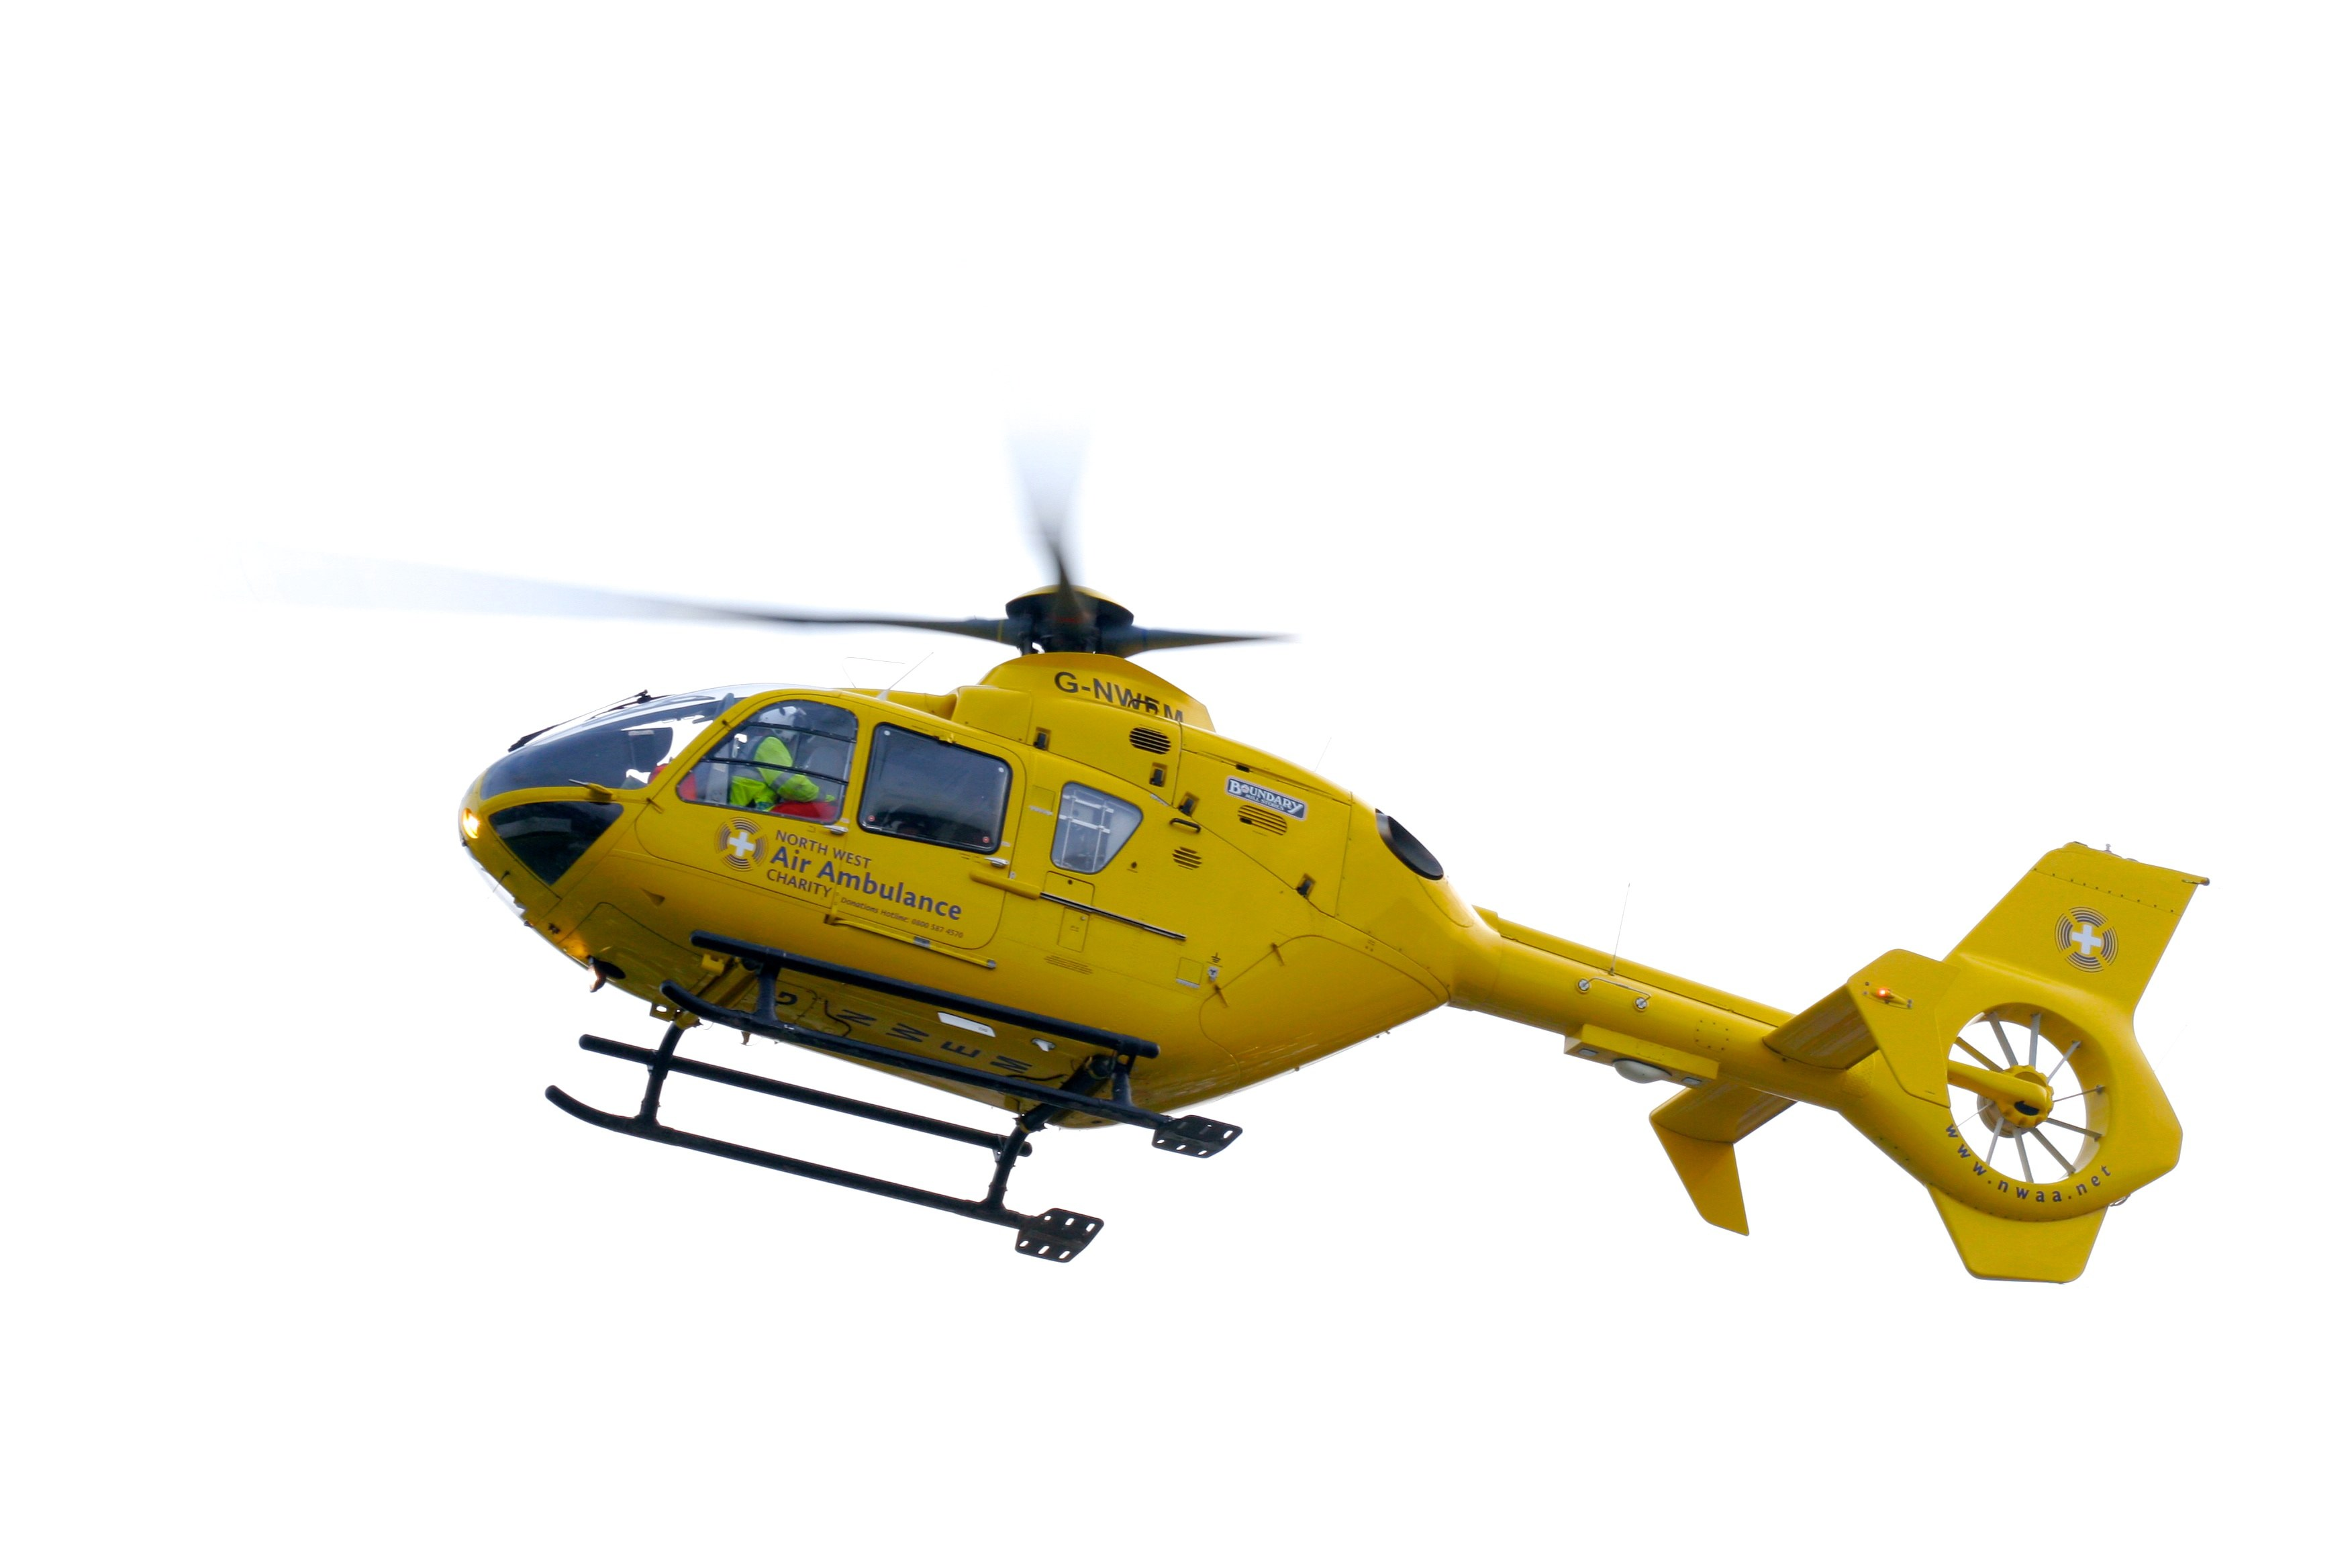 Liberal Democrats will use Libor fine to invest £2.5m in North West air ambulance